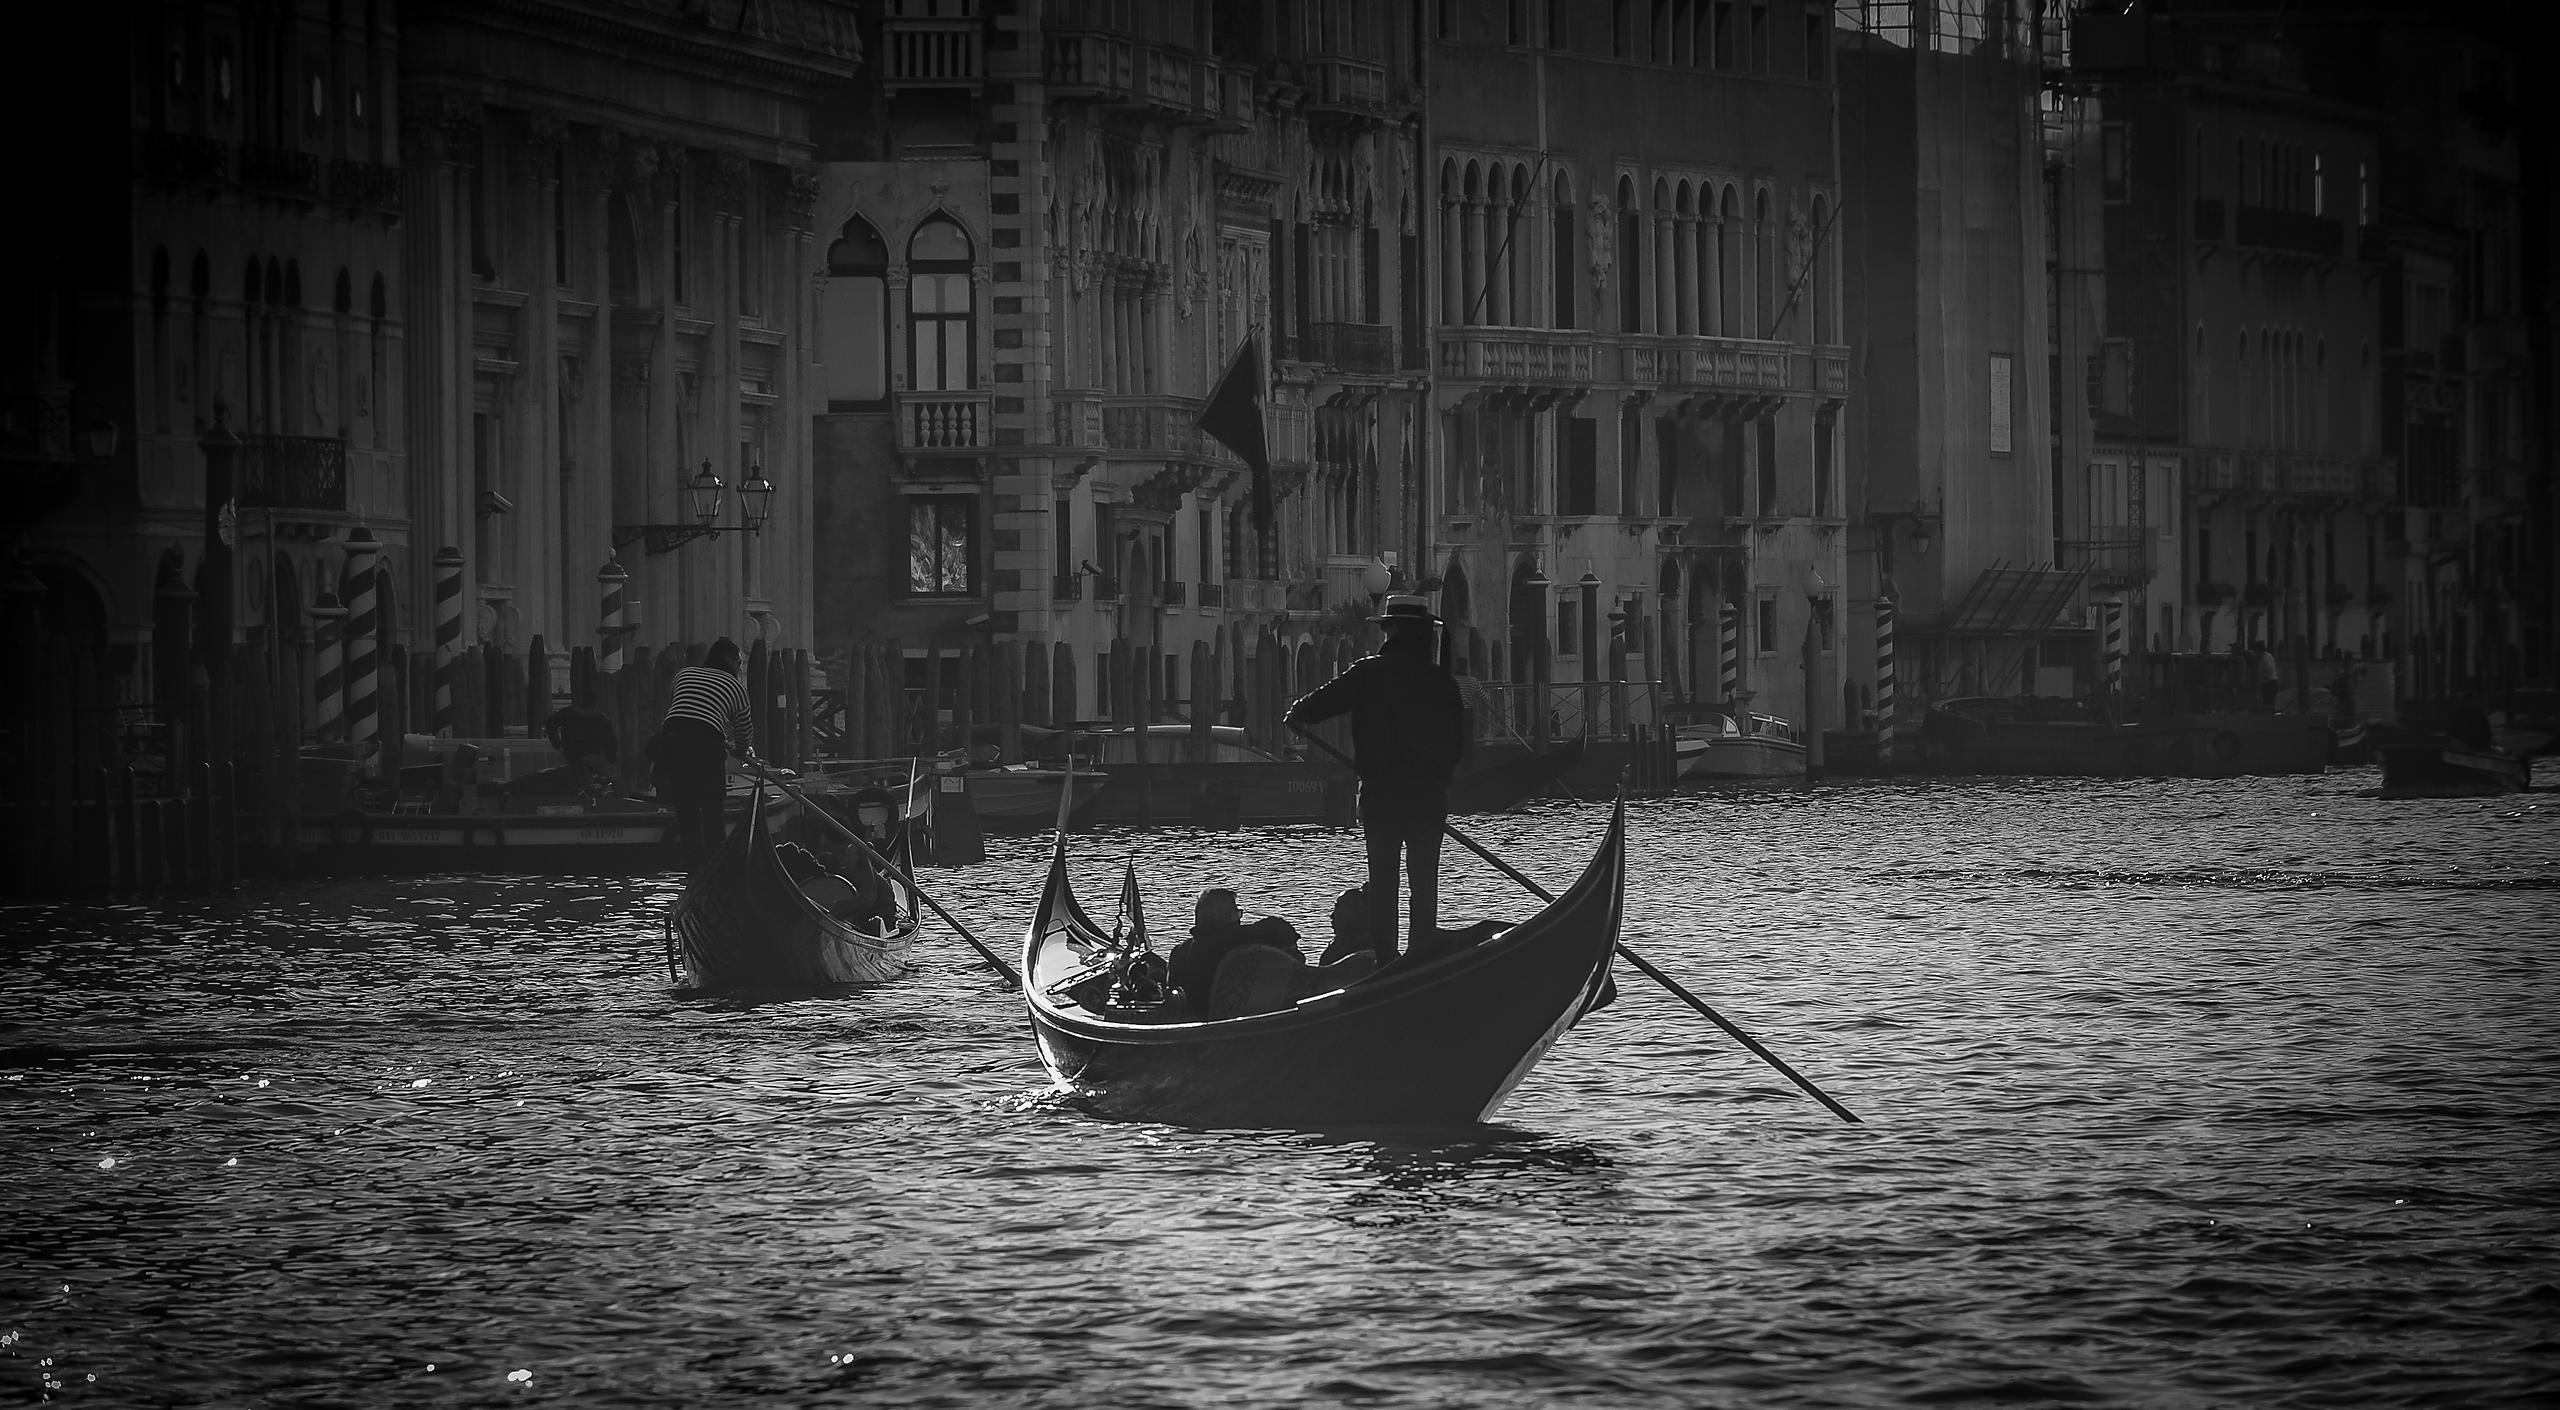 Gondolas on the Grand Canal, Venice - black & white